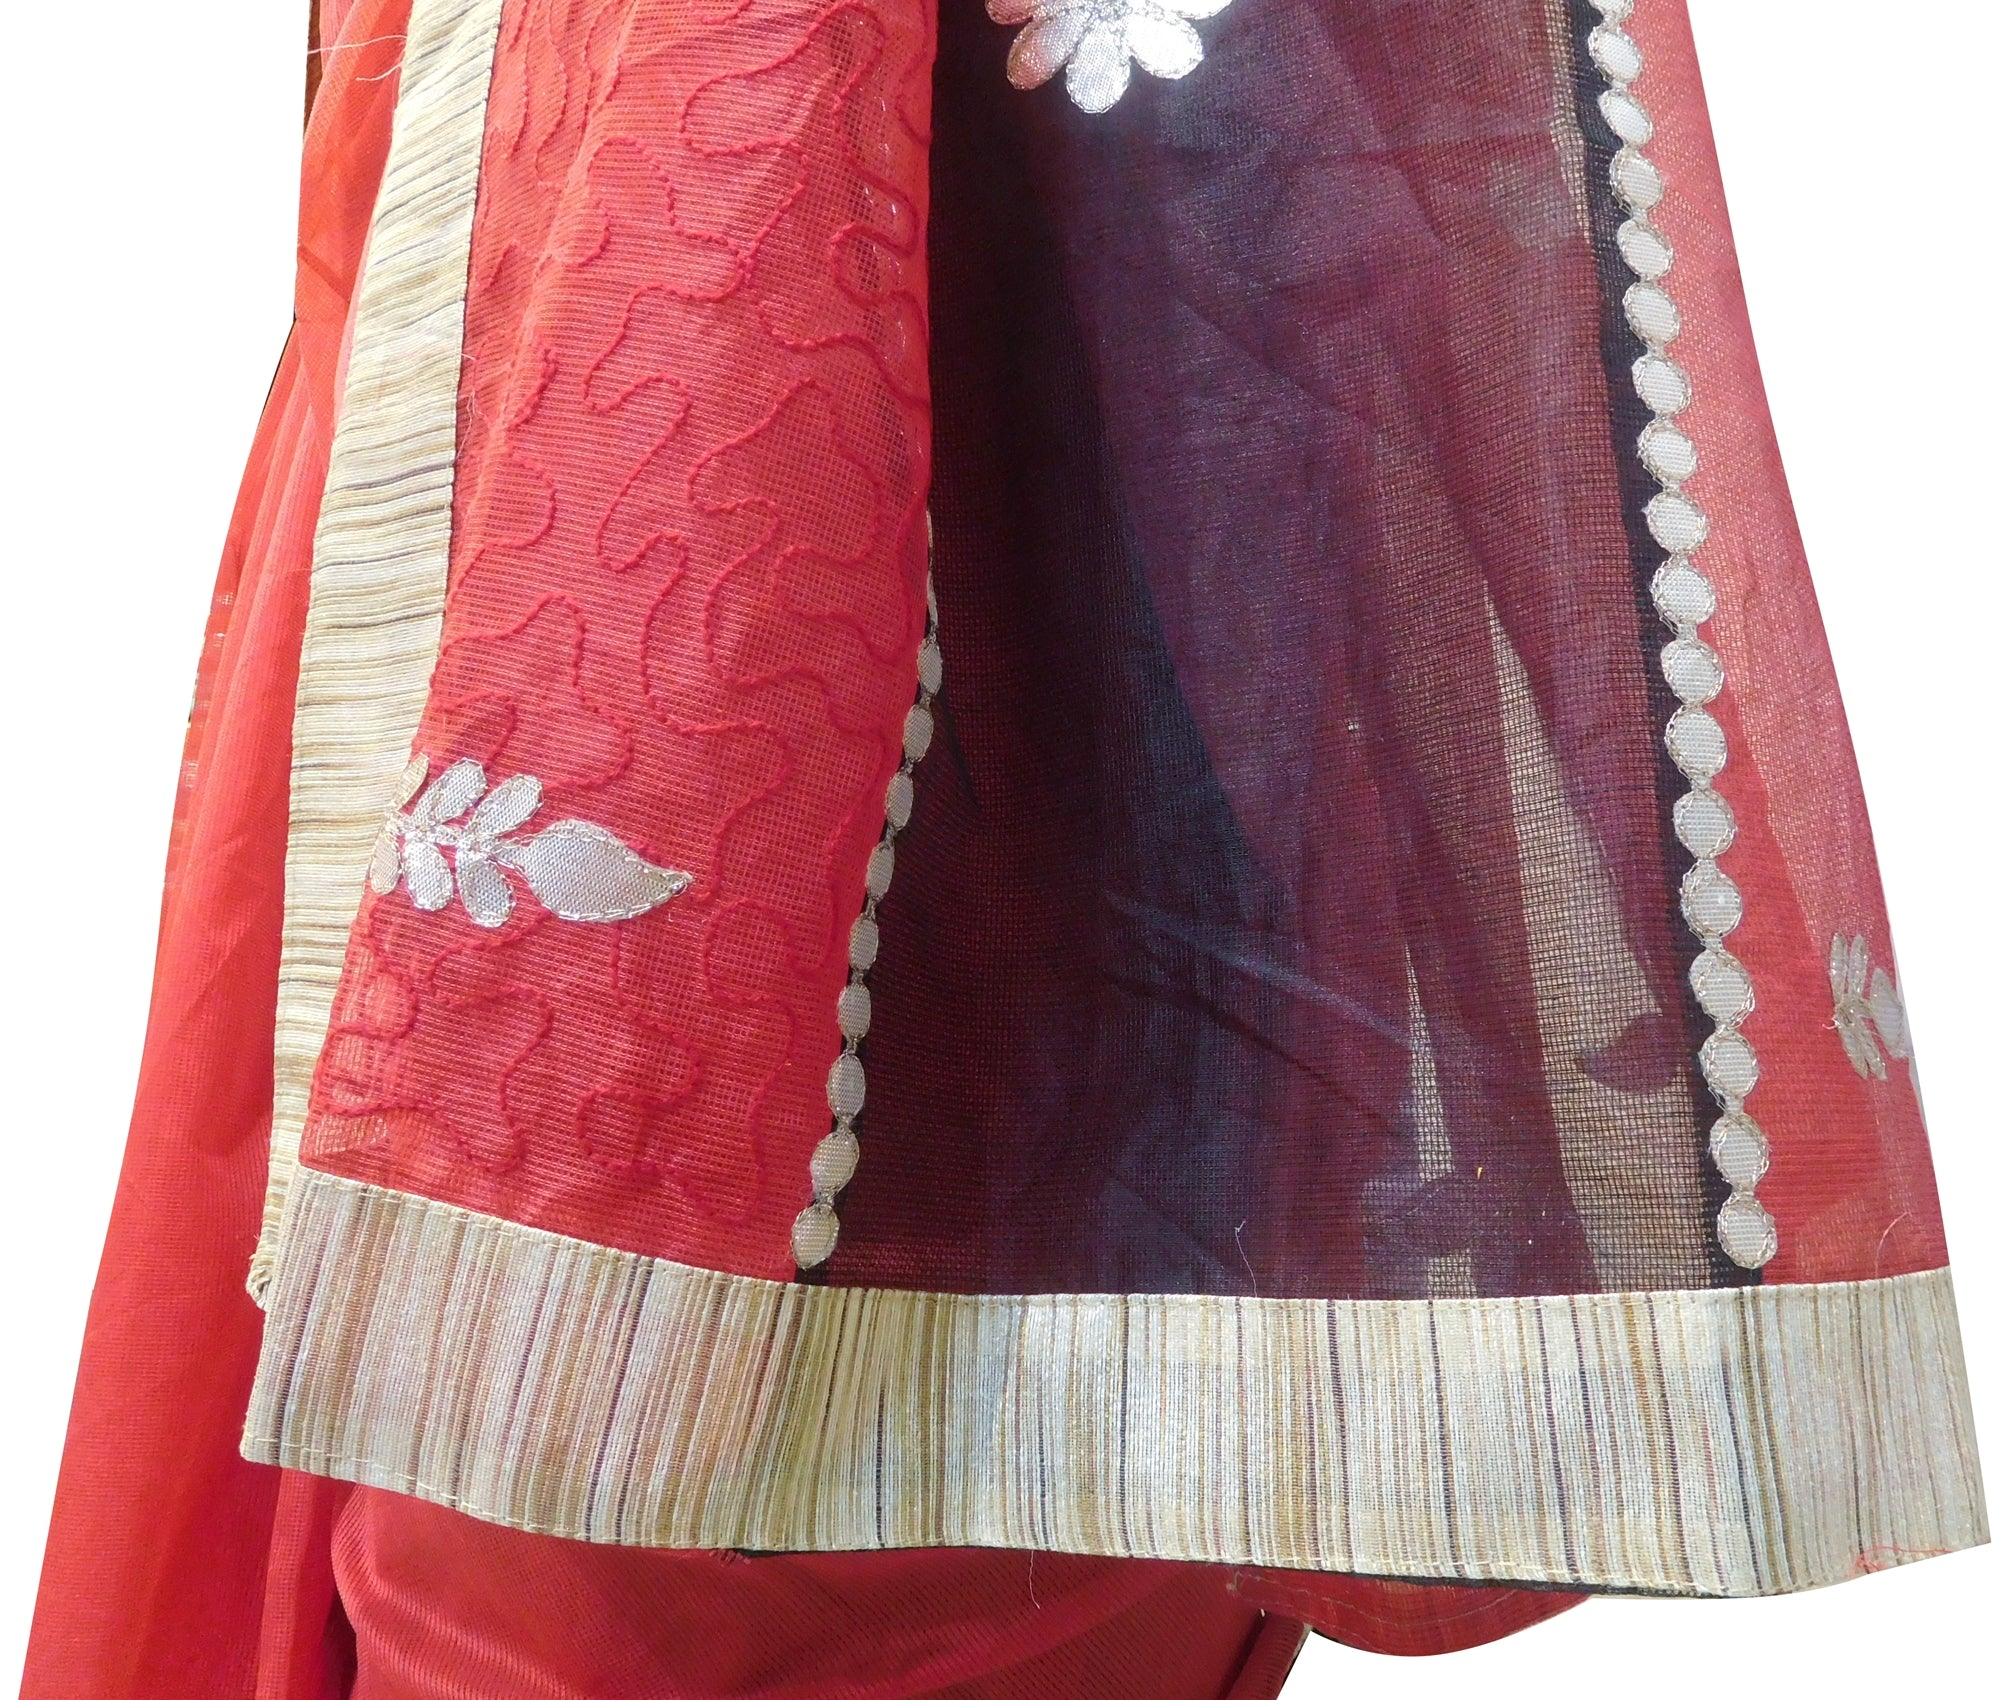 Red & Black Designer Wedding Partywear Supernet (Cotton) Hand Embroidery Zari Gota Work Kolkata Saree Sari E467